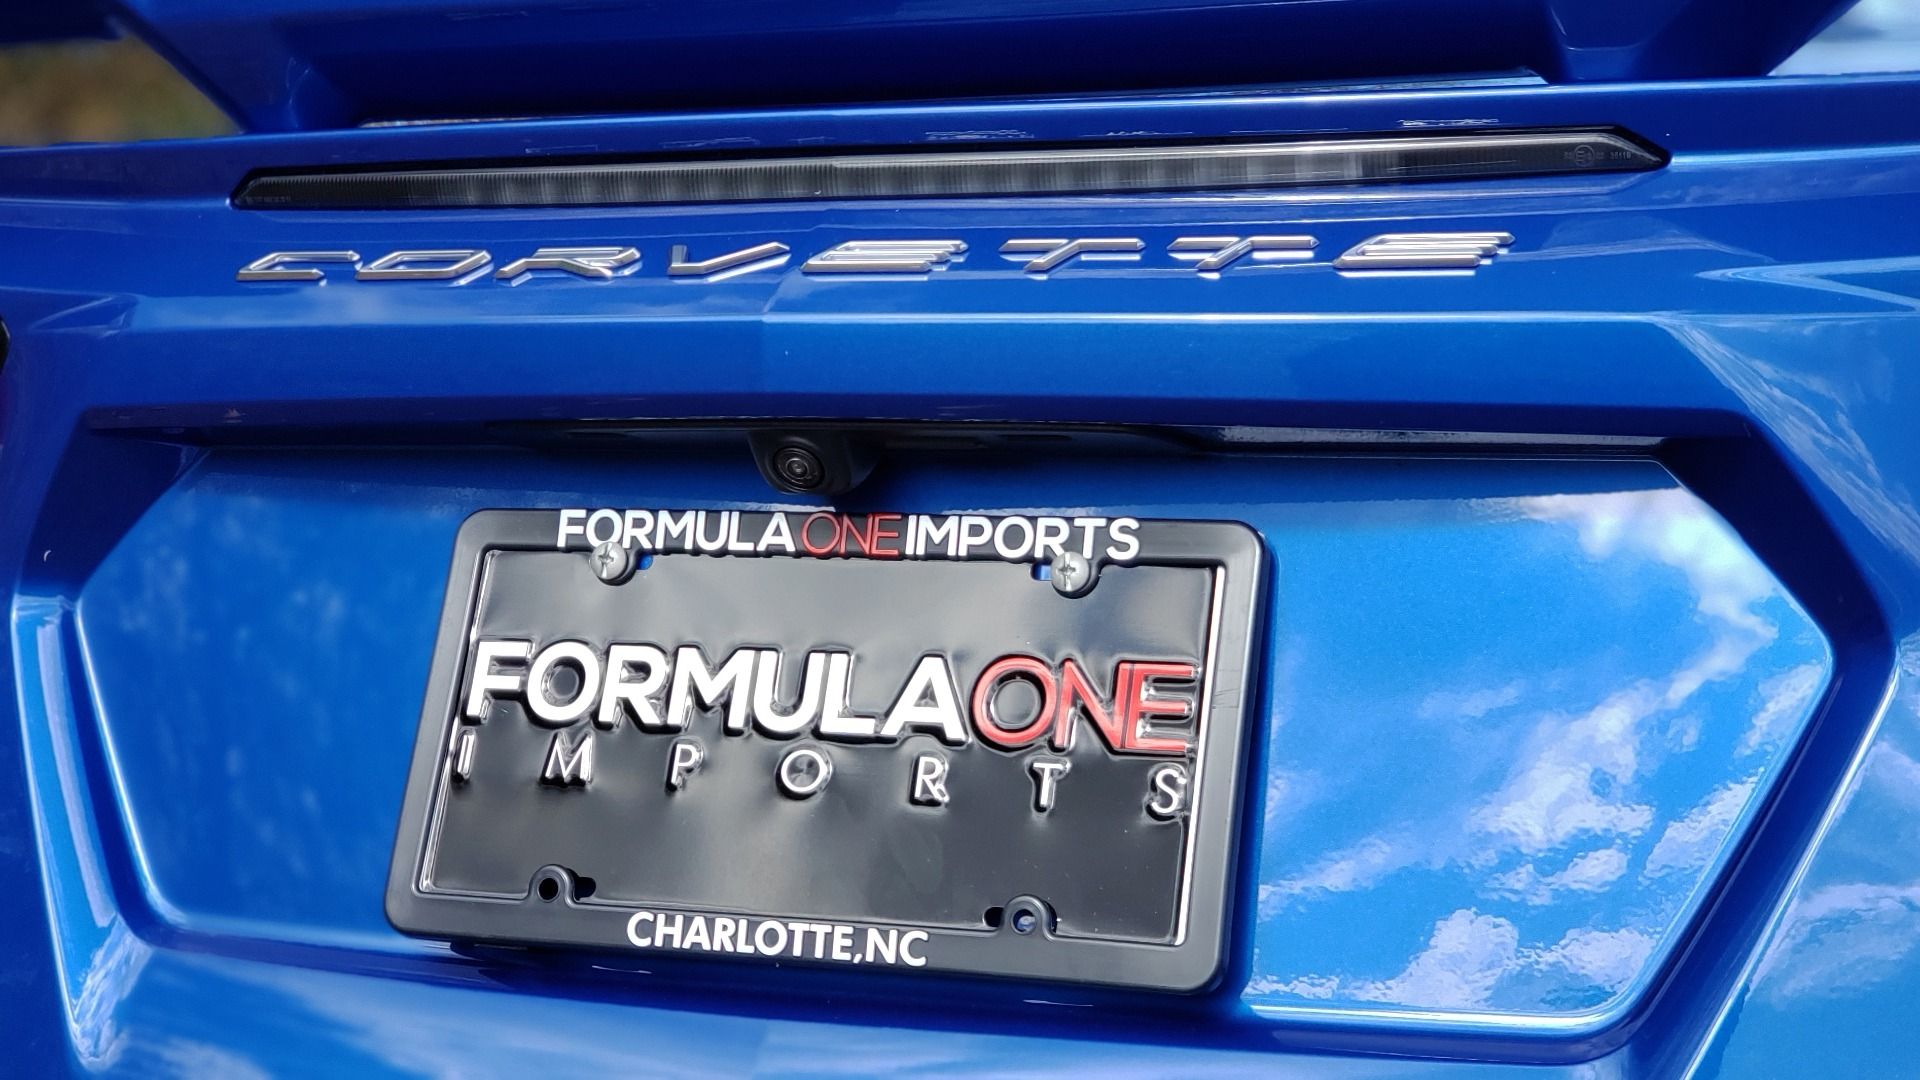 Used 2020 Chevrolet C8 CORVETTE STINGRAY 2LT COUPE / NAV / HUD / BOSE / GT2 SEATS / FRONT LIFT / REARVIEW for sale $98,999 at Formula Imports in Charlotte NC 28227 41